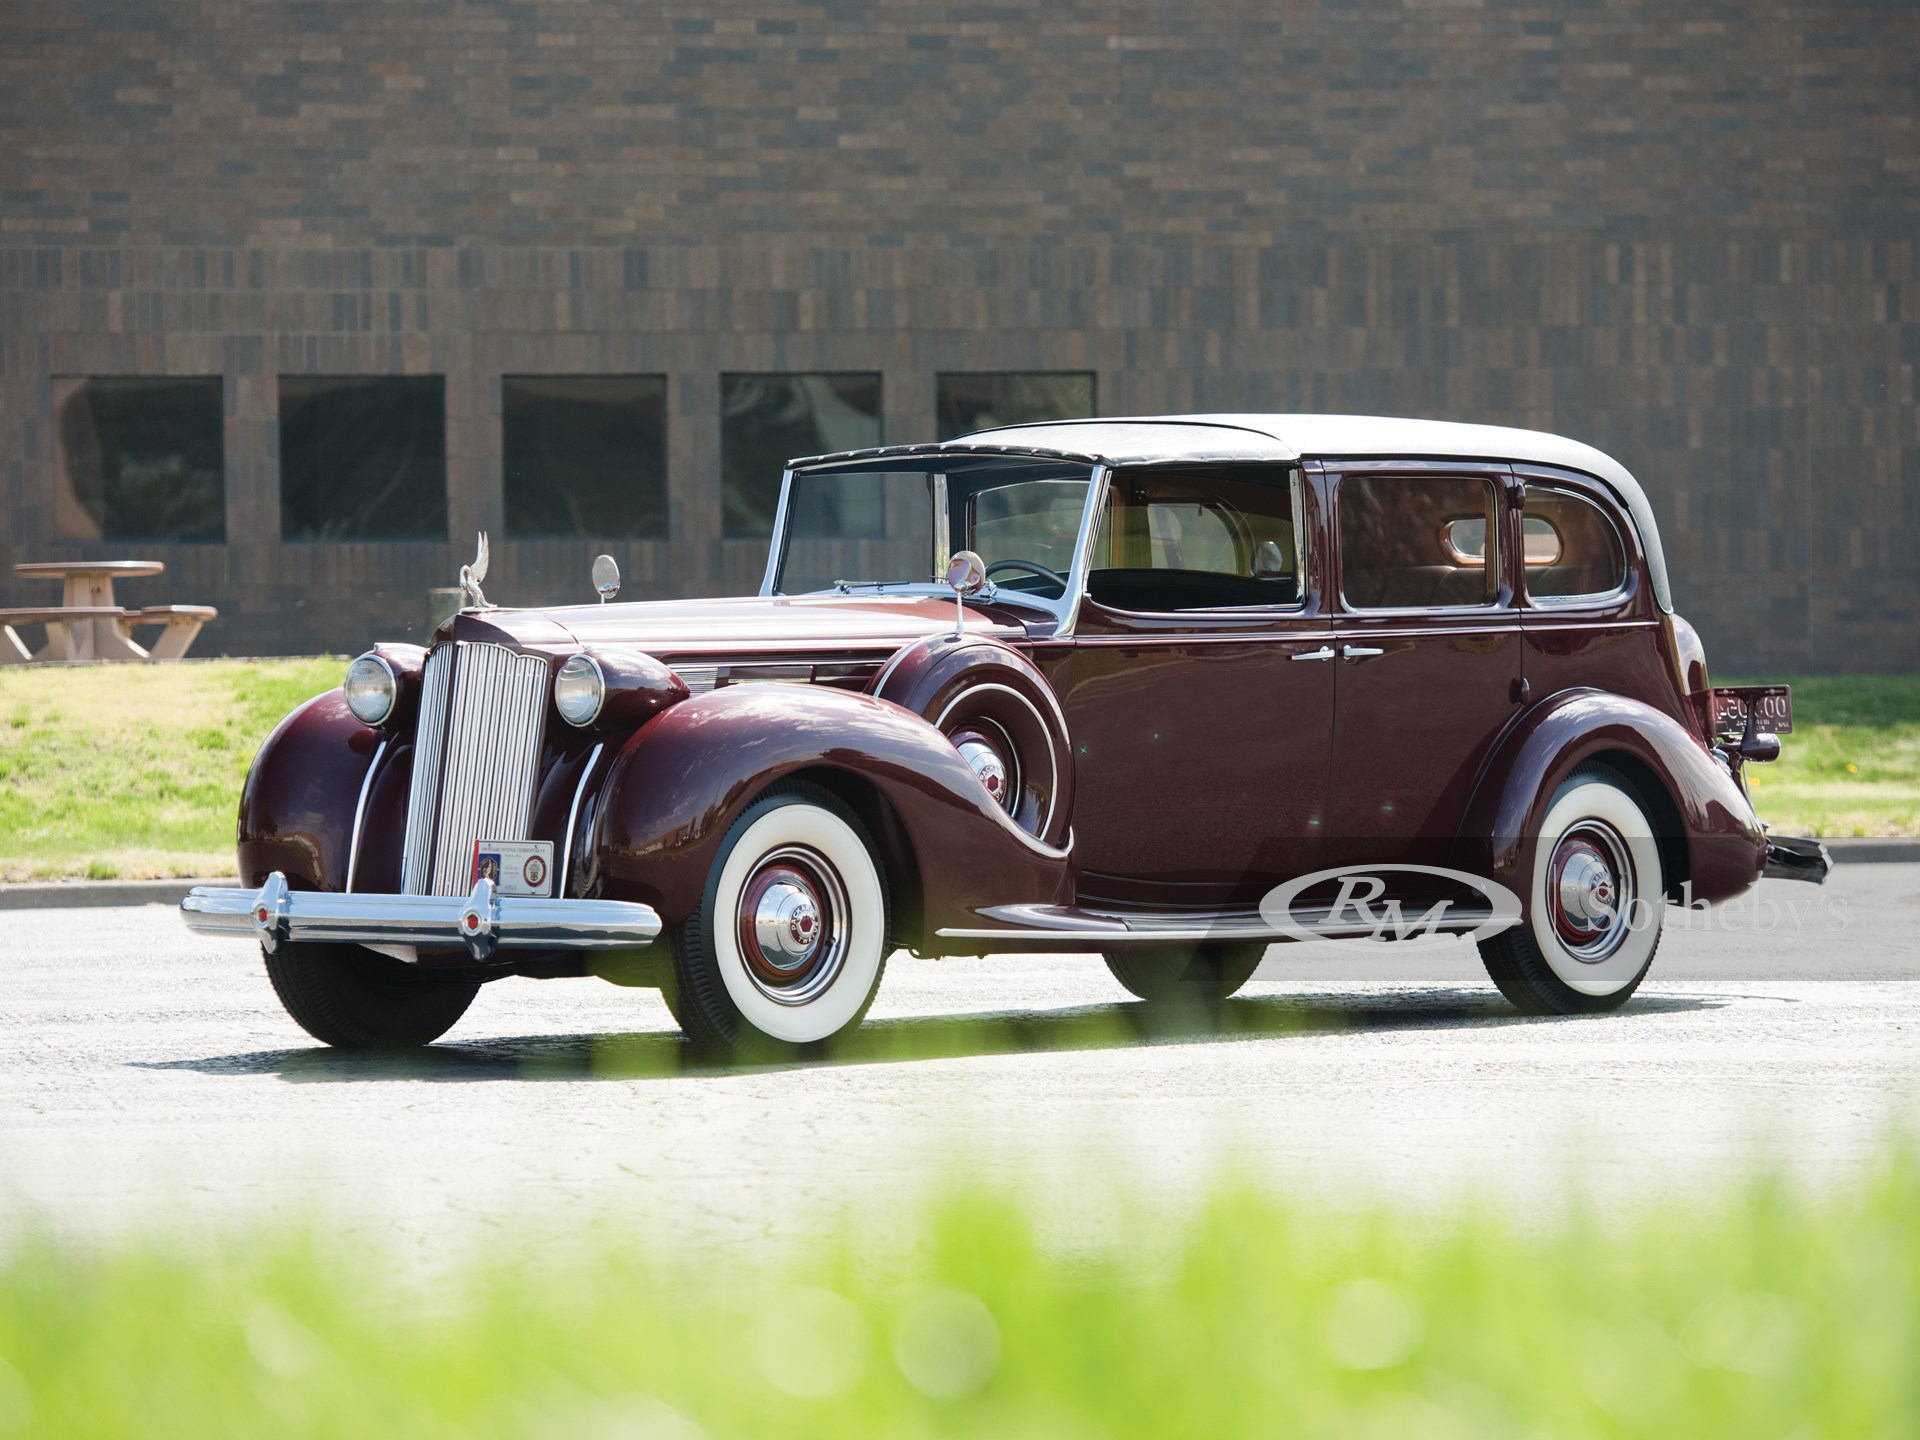 1938 Packard Twelve All-Weather Town Car by Rollston